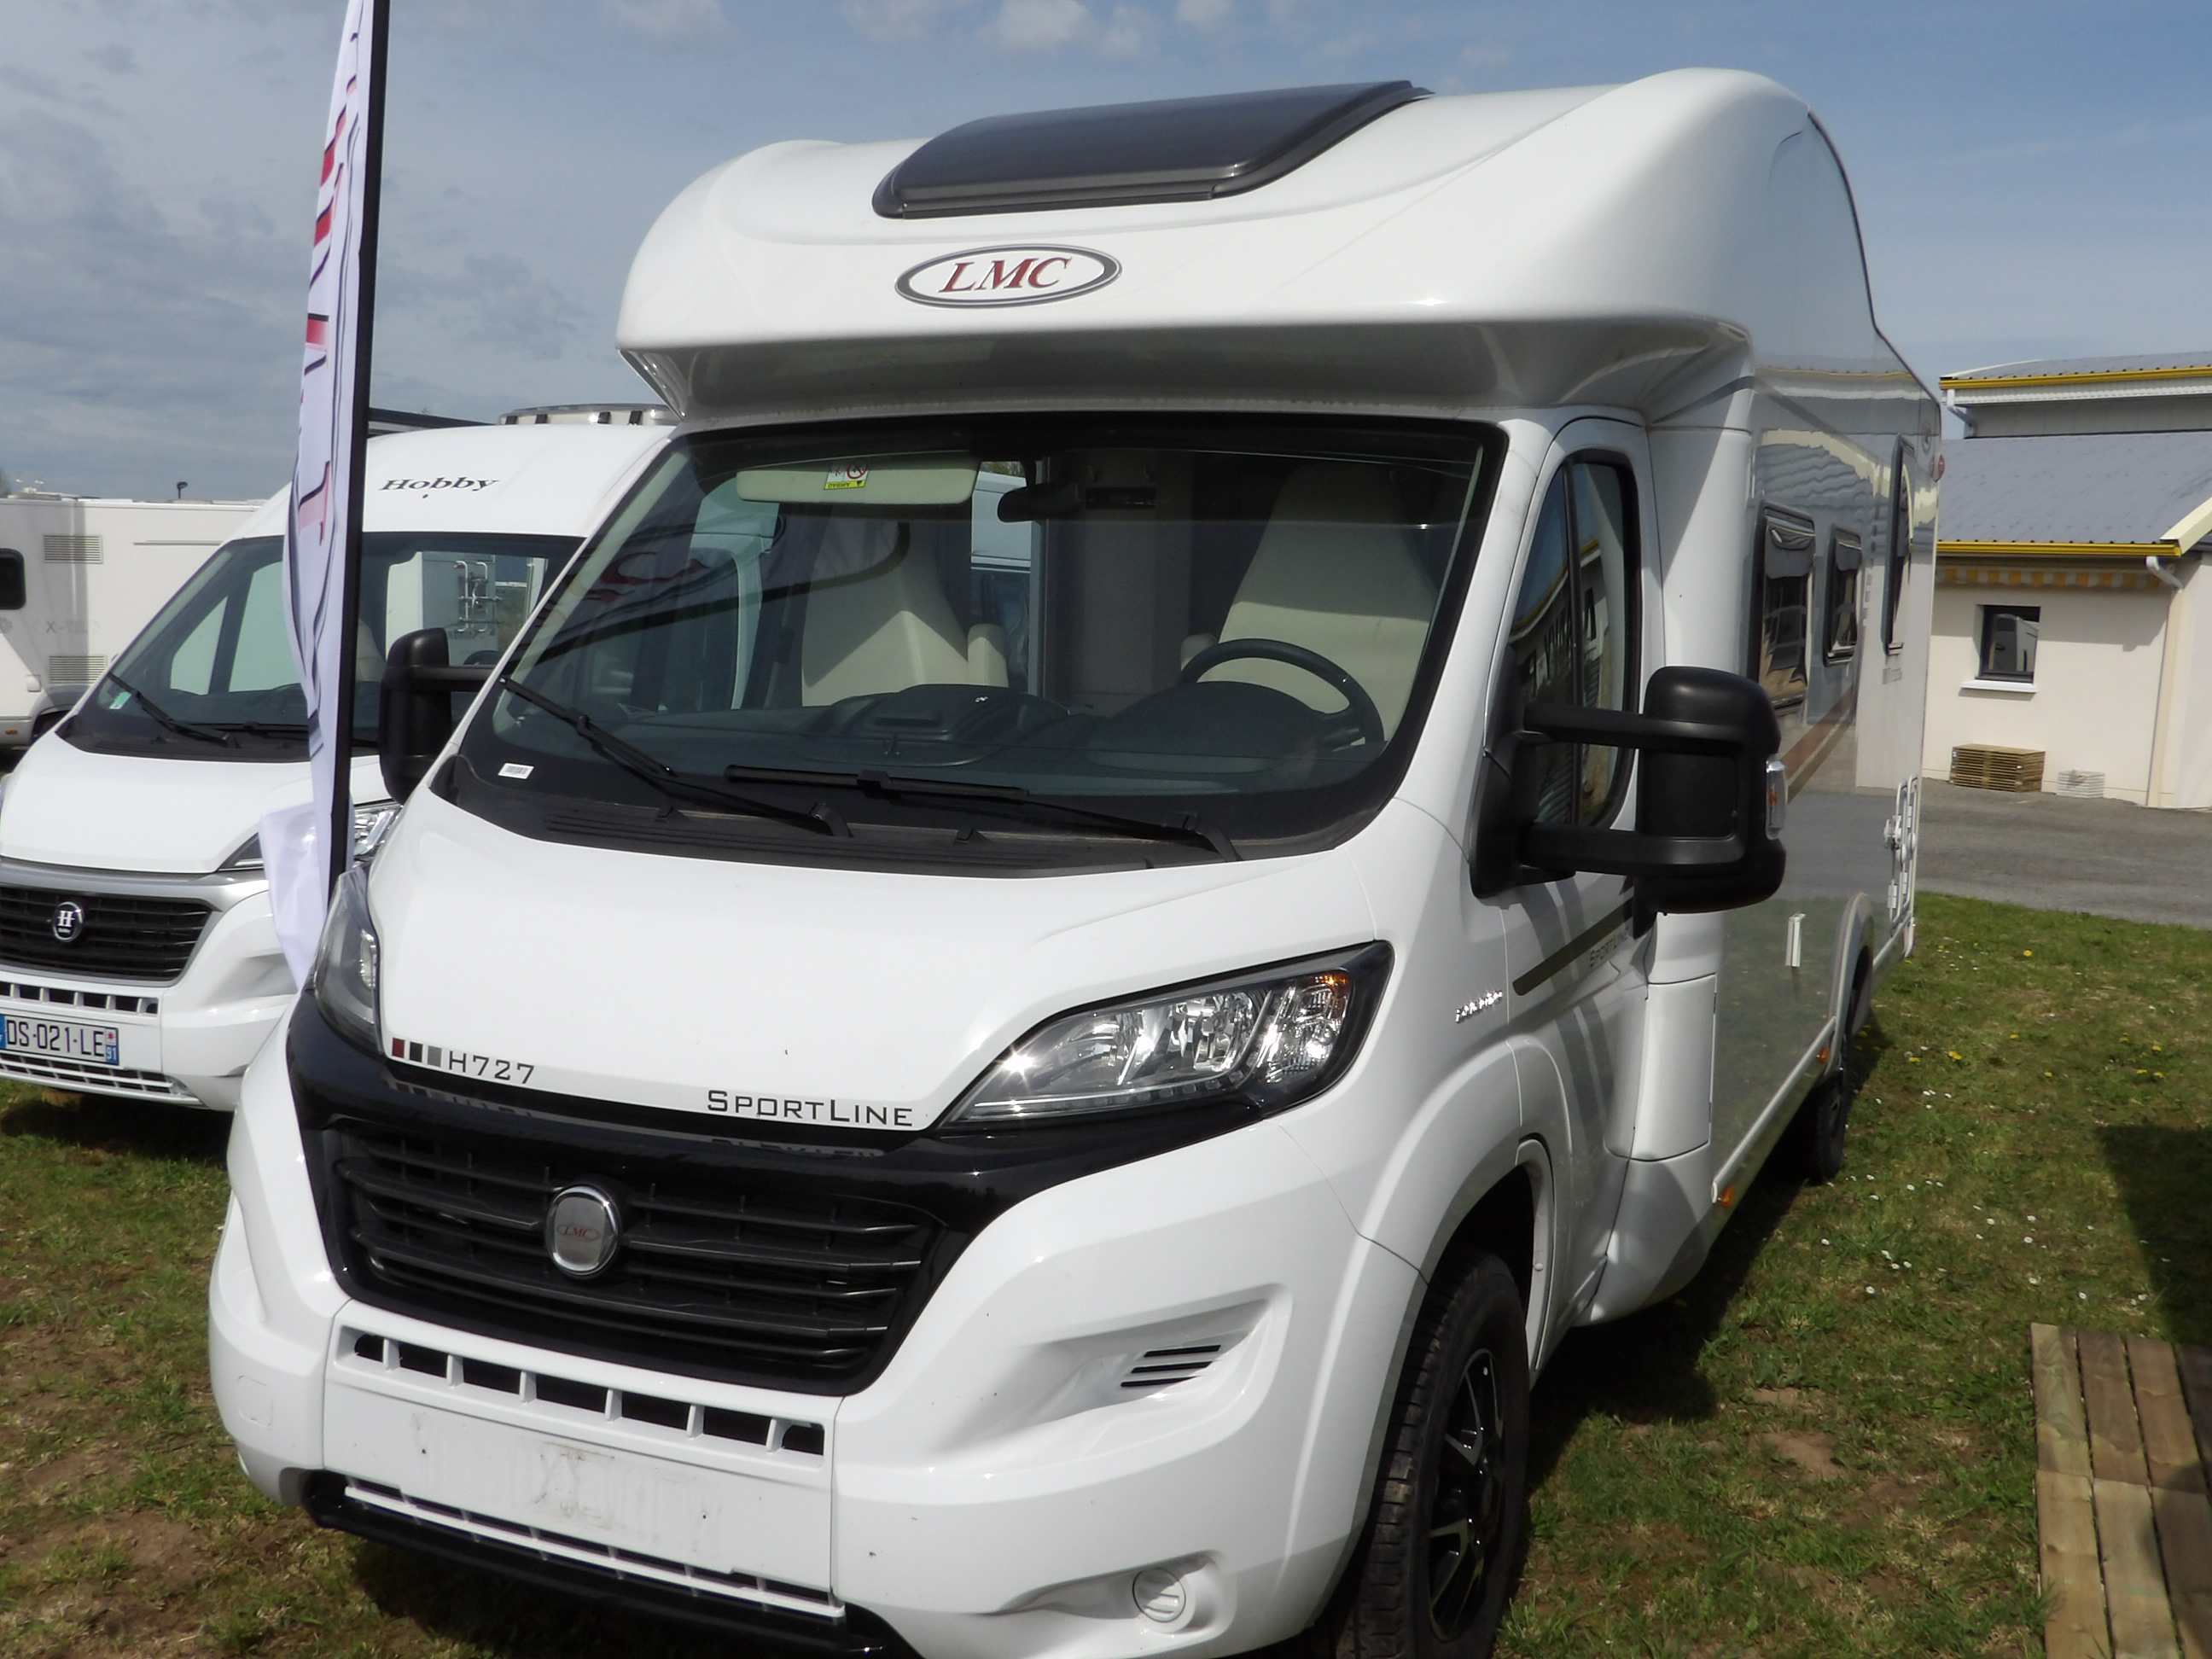 lmc breezer h 727 neuf de 2016 fiat camping car en vente locoal mendon sortie 36 morbihan 56. Black Bedroom Furniture Sets. Home Design Ideas